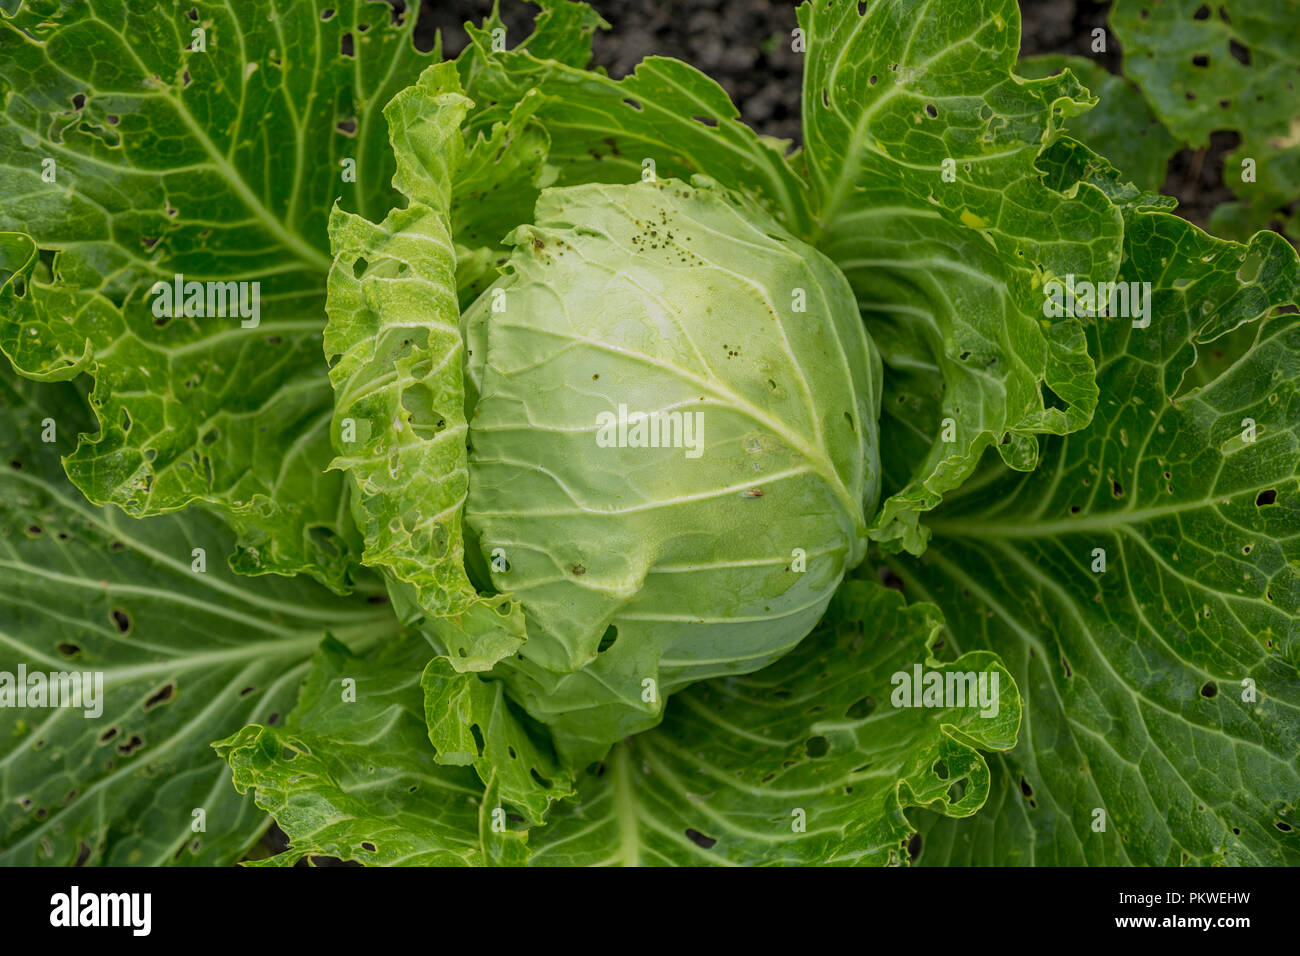 Ripe fork cabbage with green leaves in the wild - Stock Image